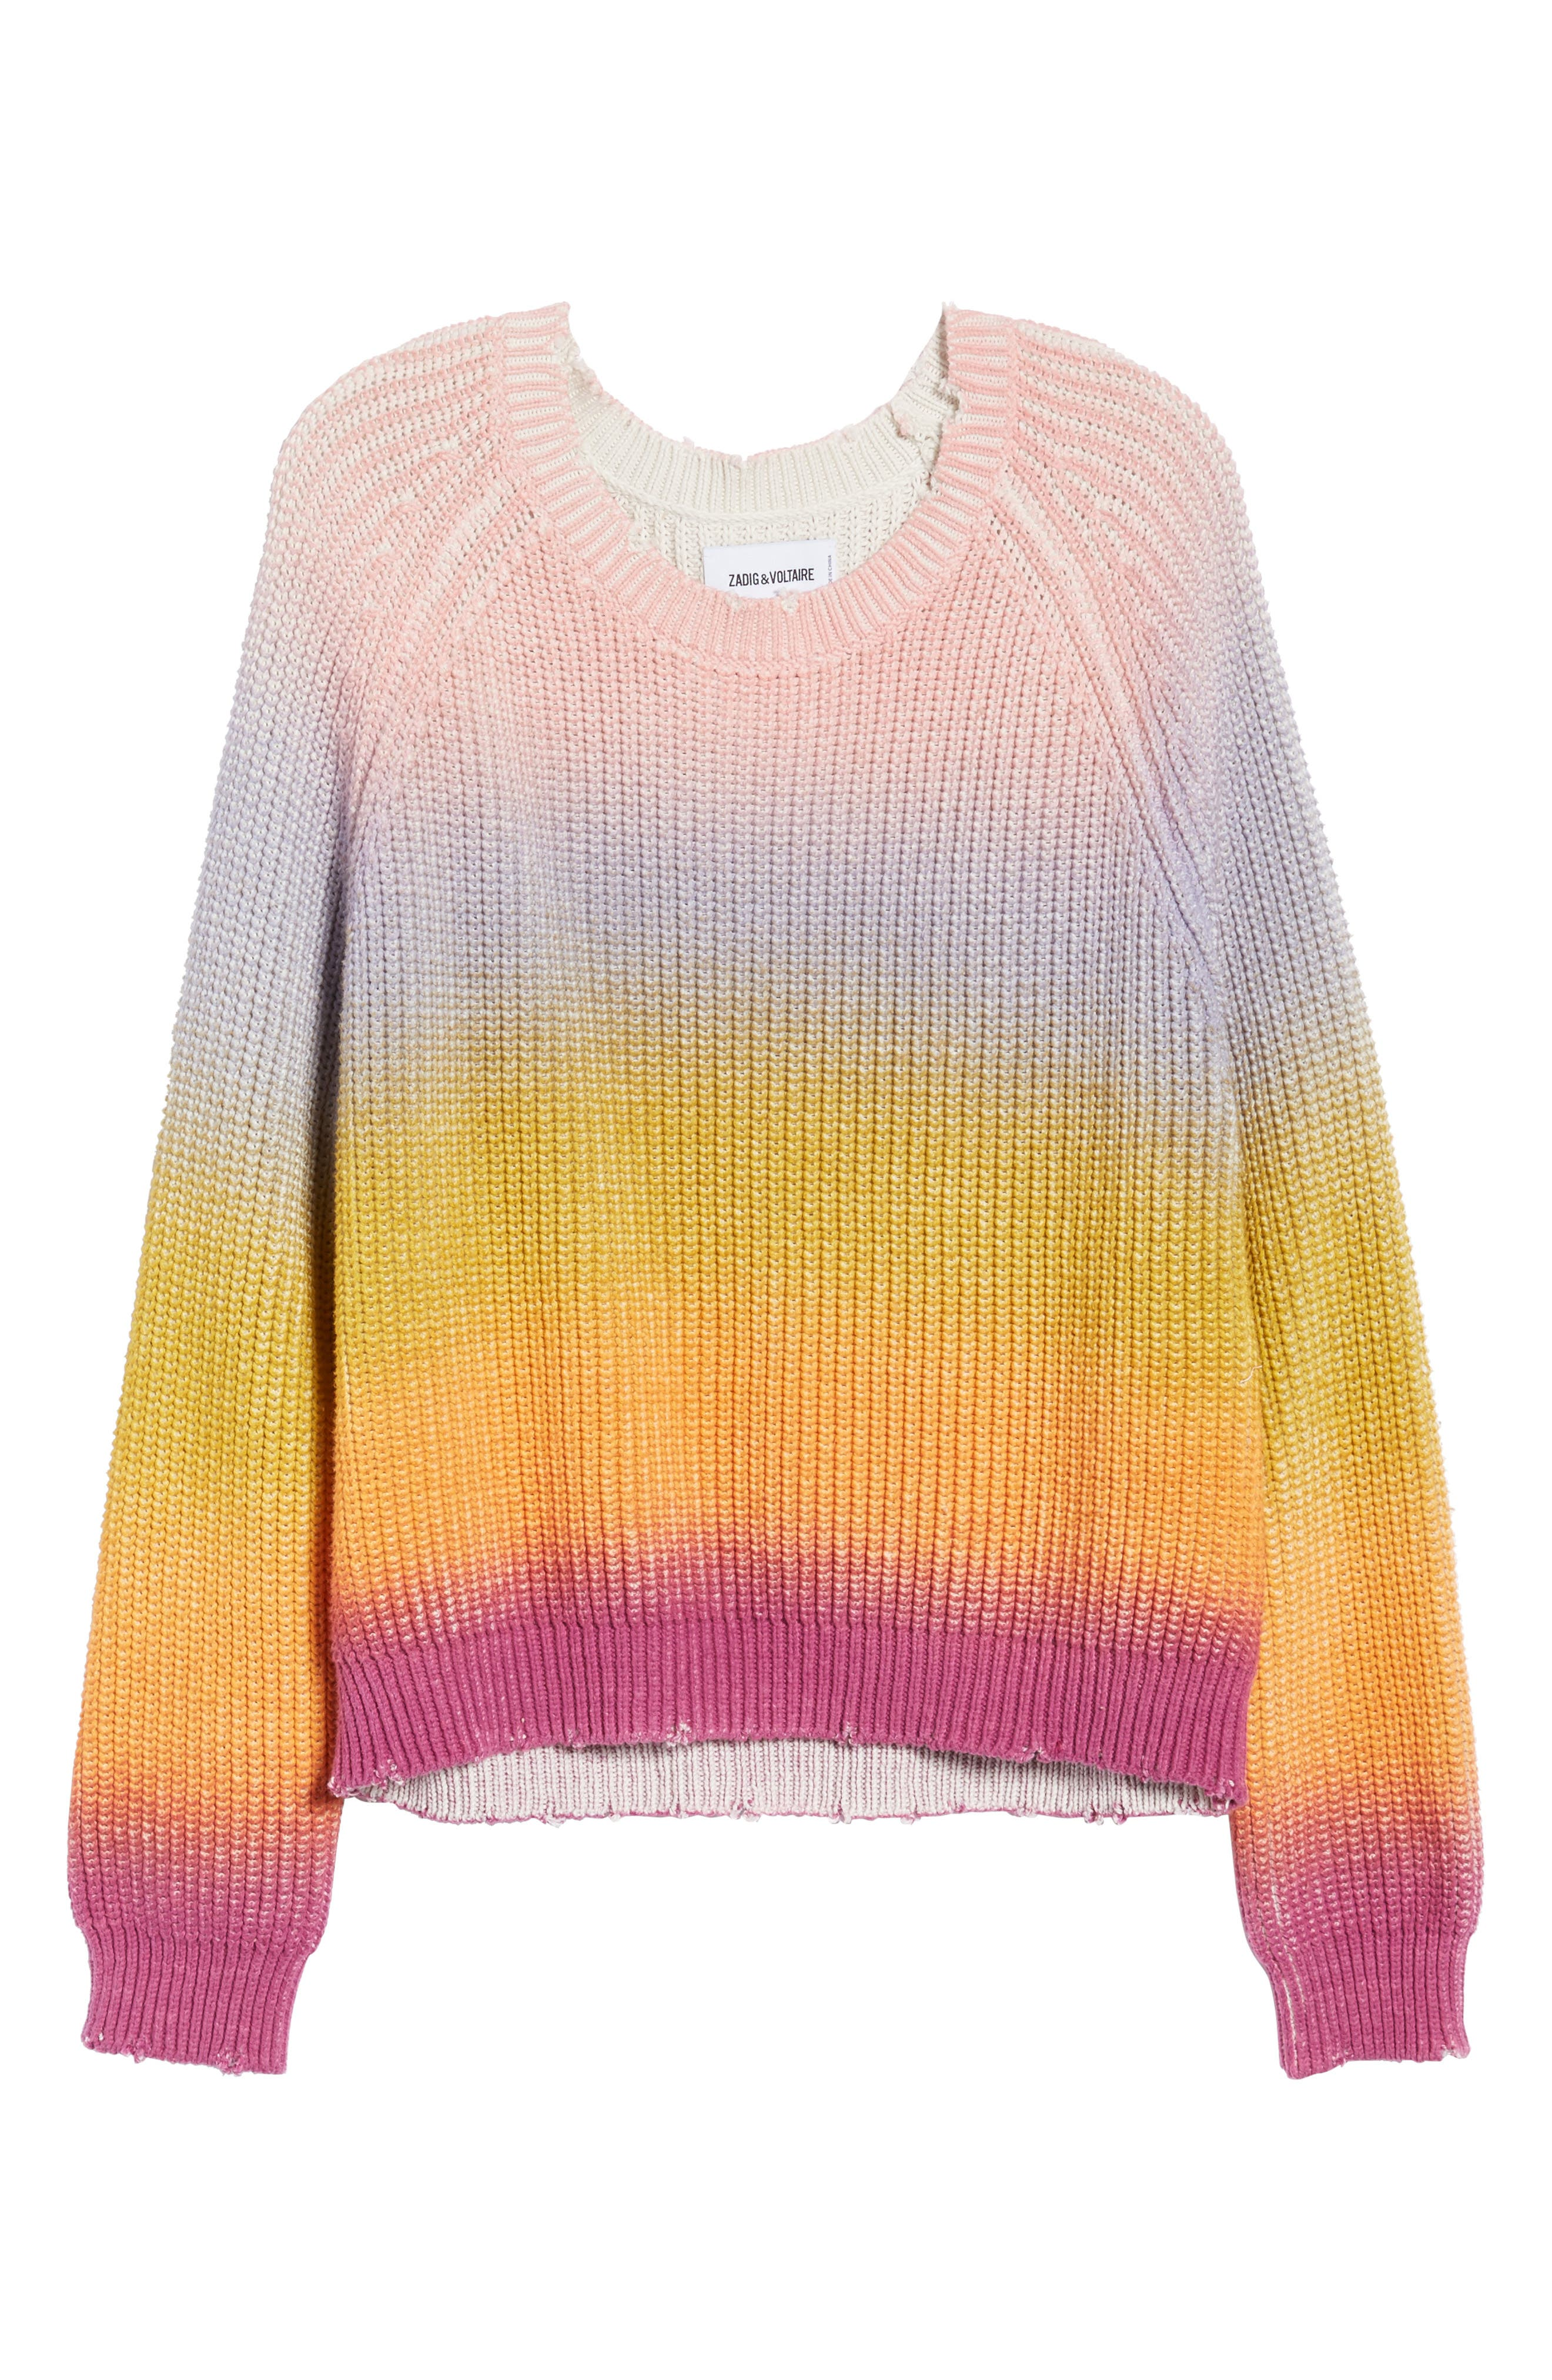 Kary Sweater,                             Alternate thumbnail 7, color,                             Multicolor